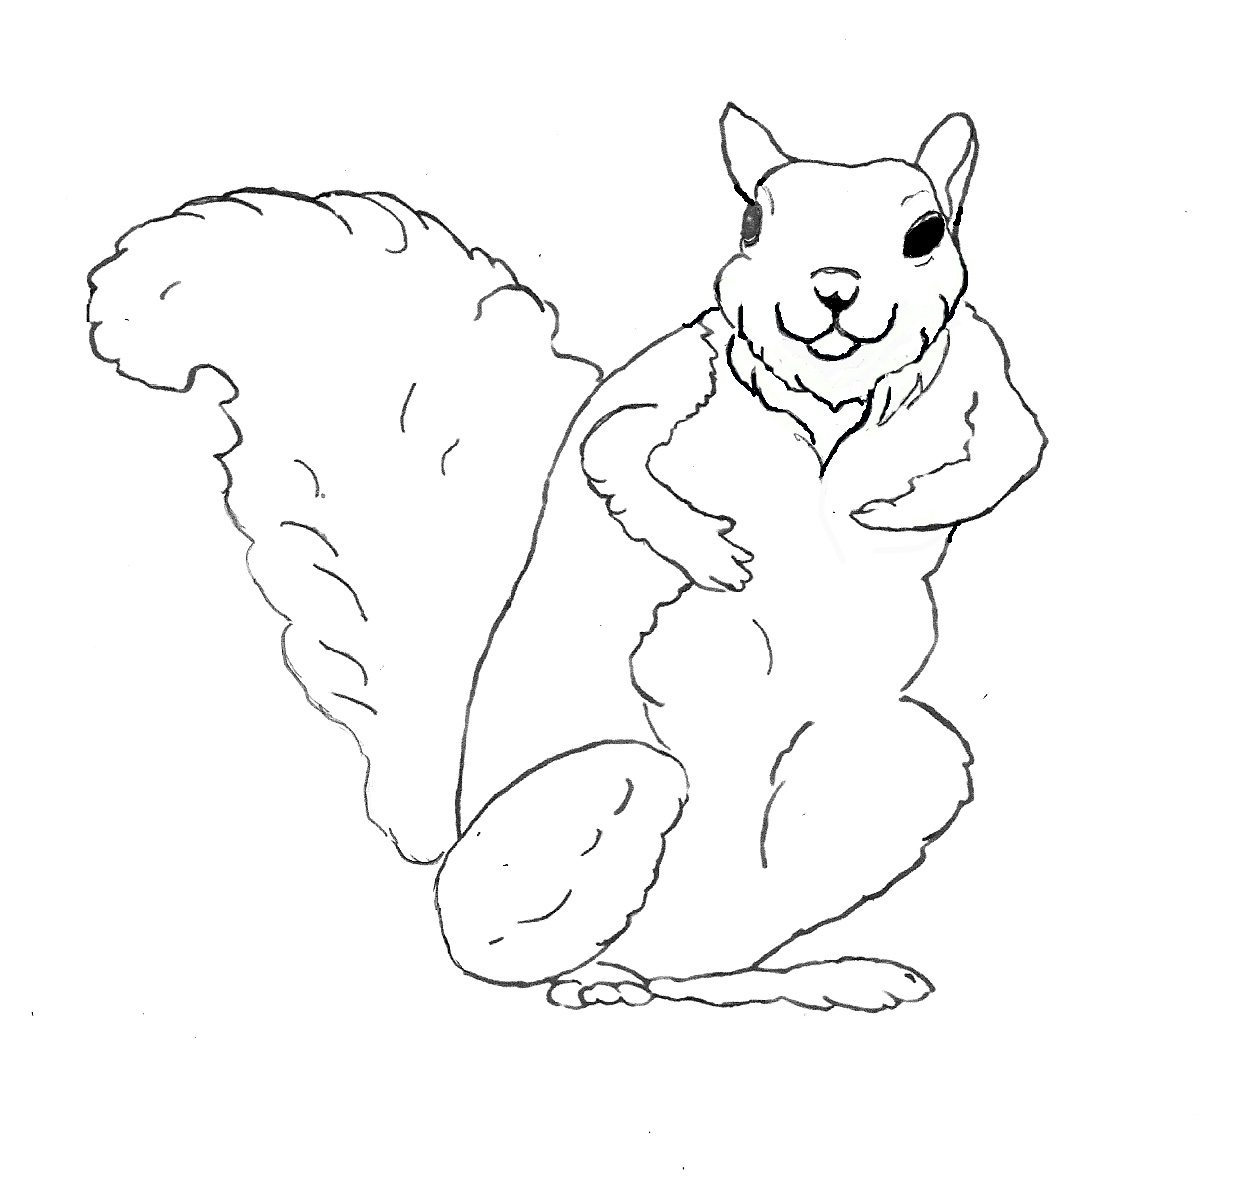 graphic regarding Printable Squirrel Target titled No cost Printable Squirrel Coloring Webpages For Small children